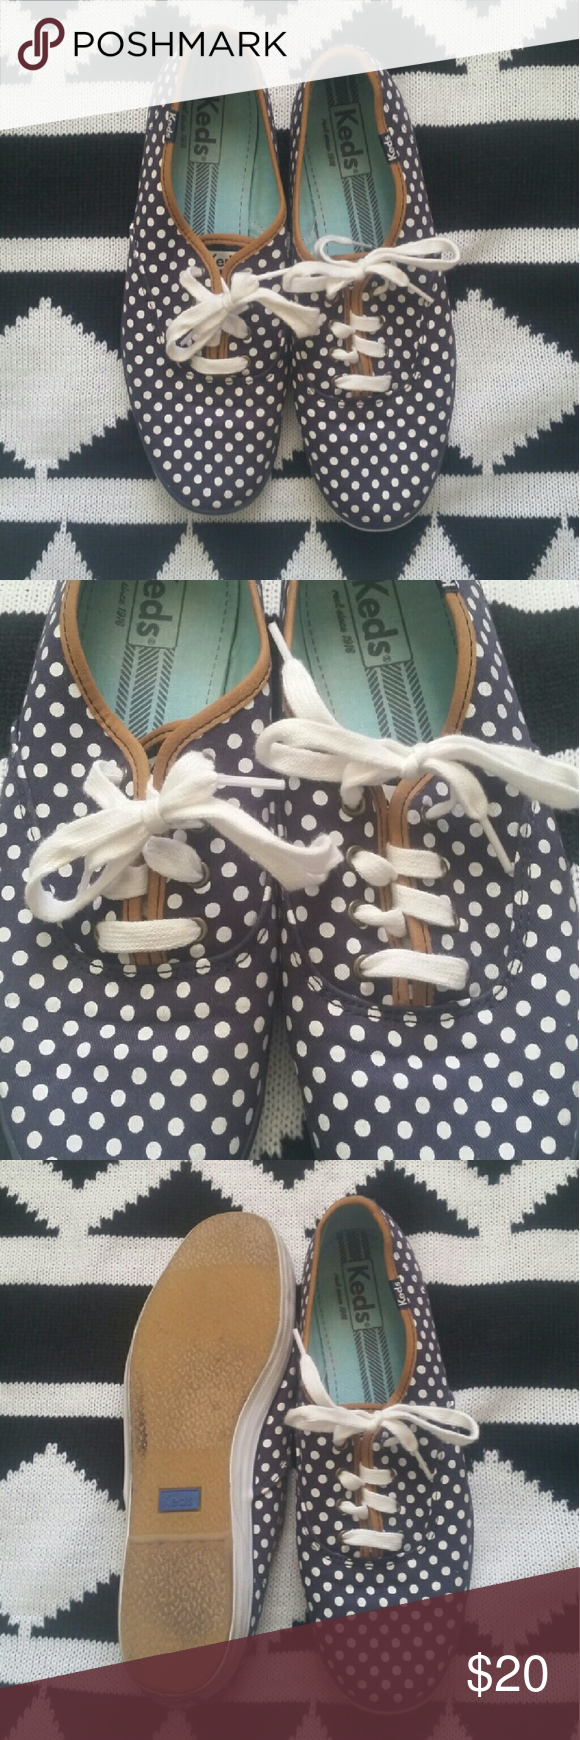 Navy + White Polka Dot Keds Navy and white polka dot Keds. Size 9.5.  Camel details. Gently used (Worn a few times) Still in great condition! Fun, casual shoe! Keds Shoes Sneakers